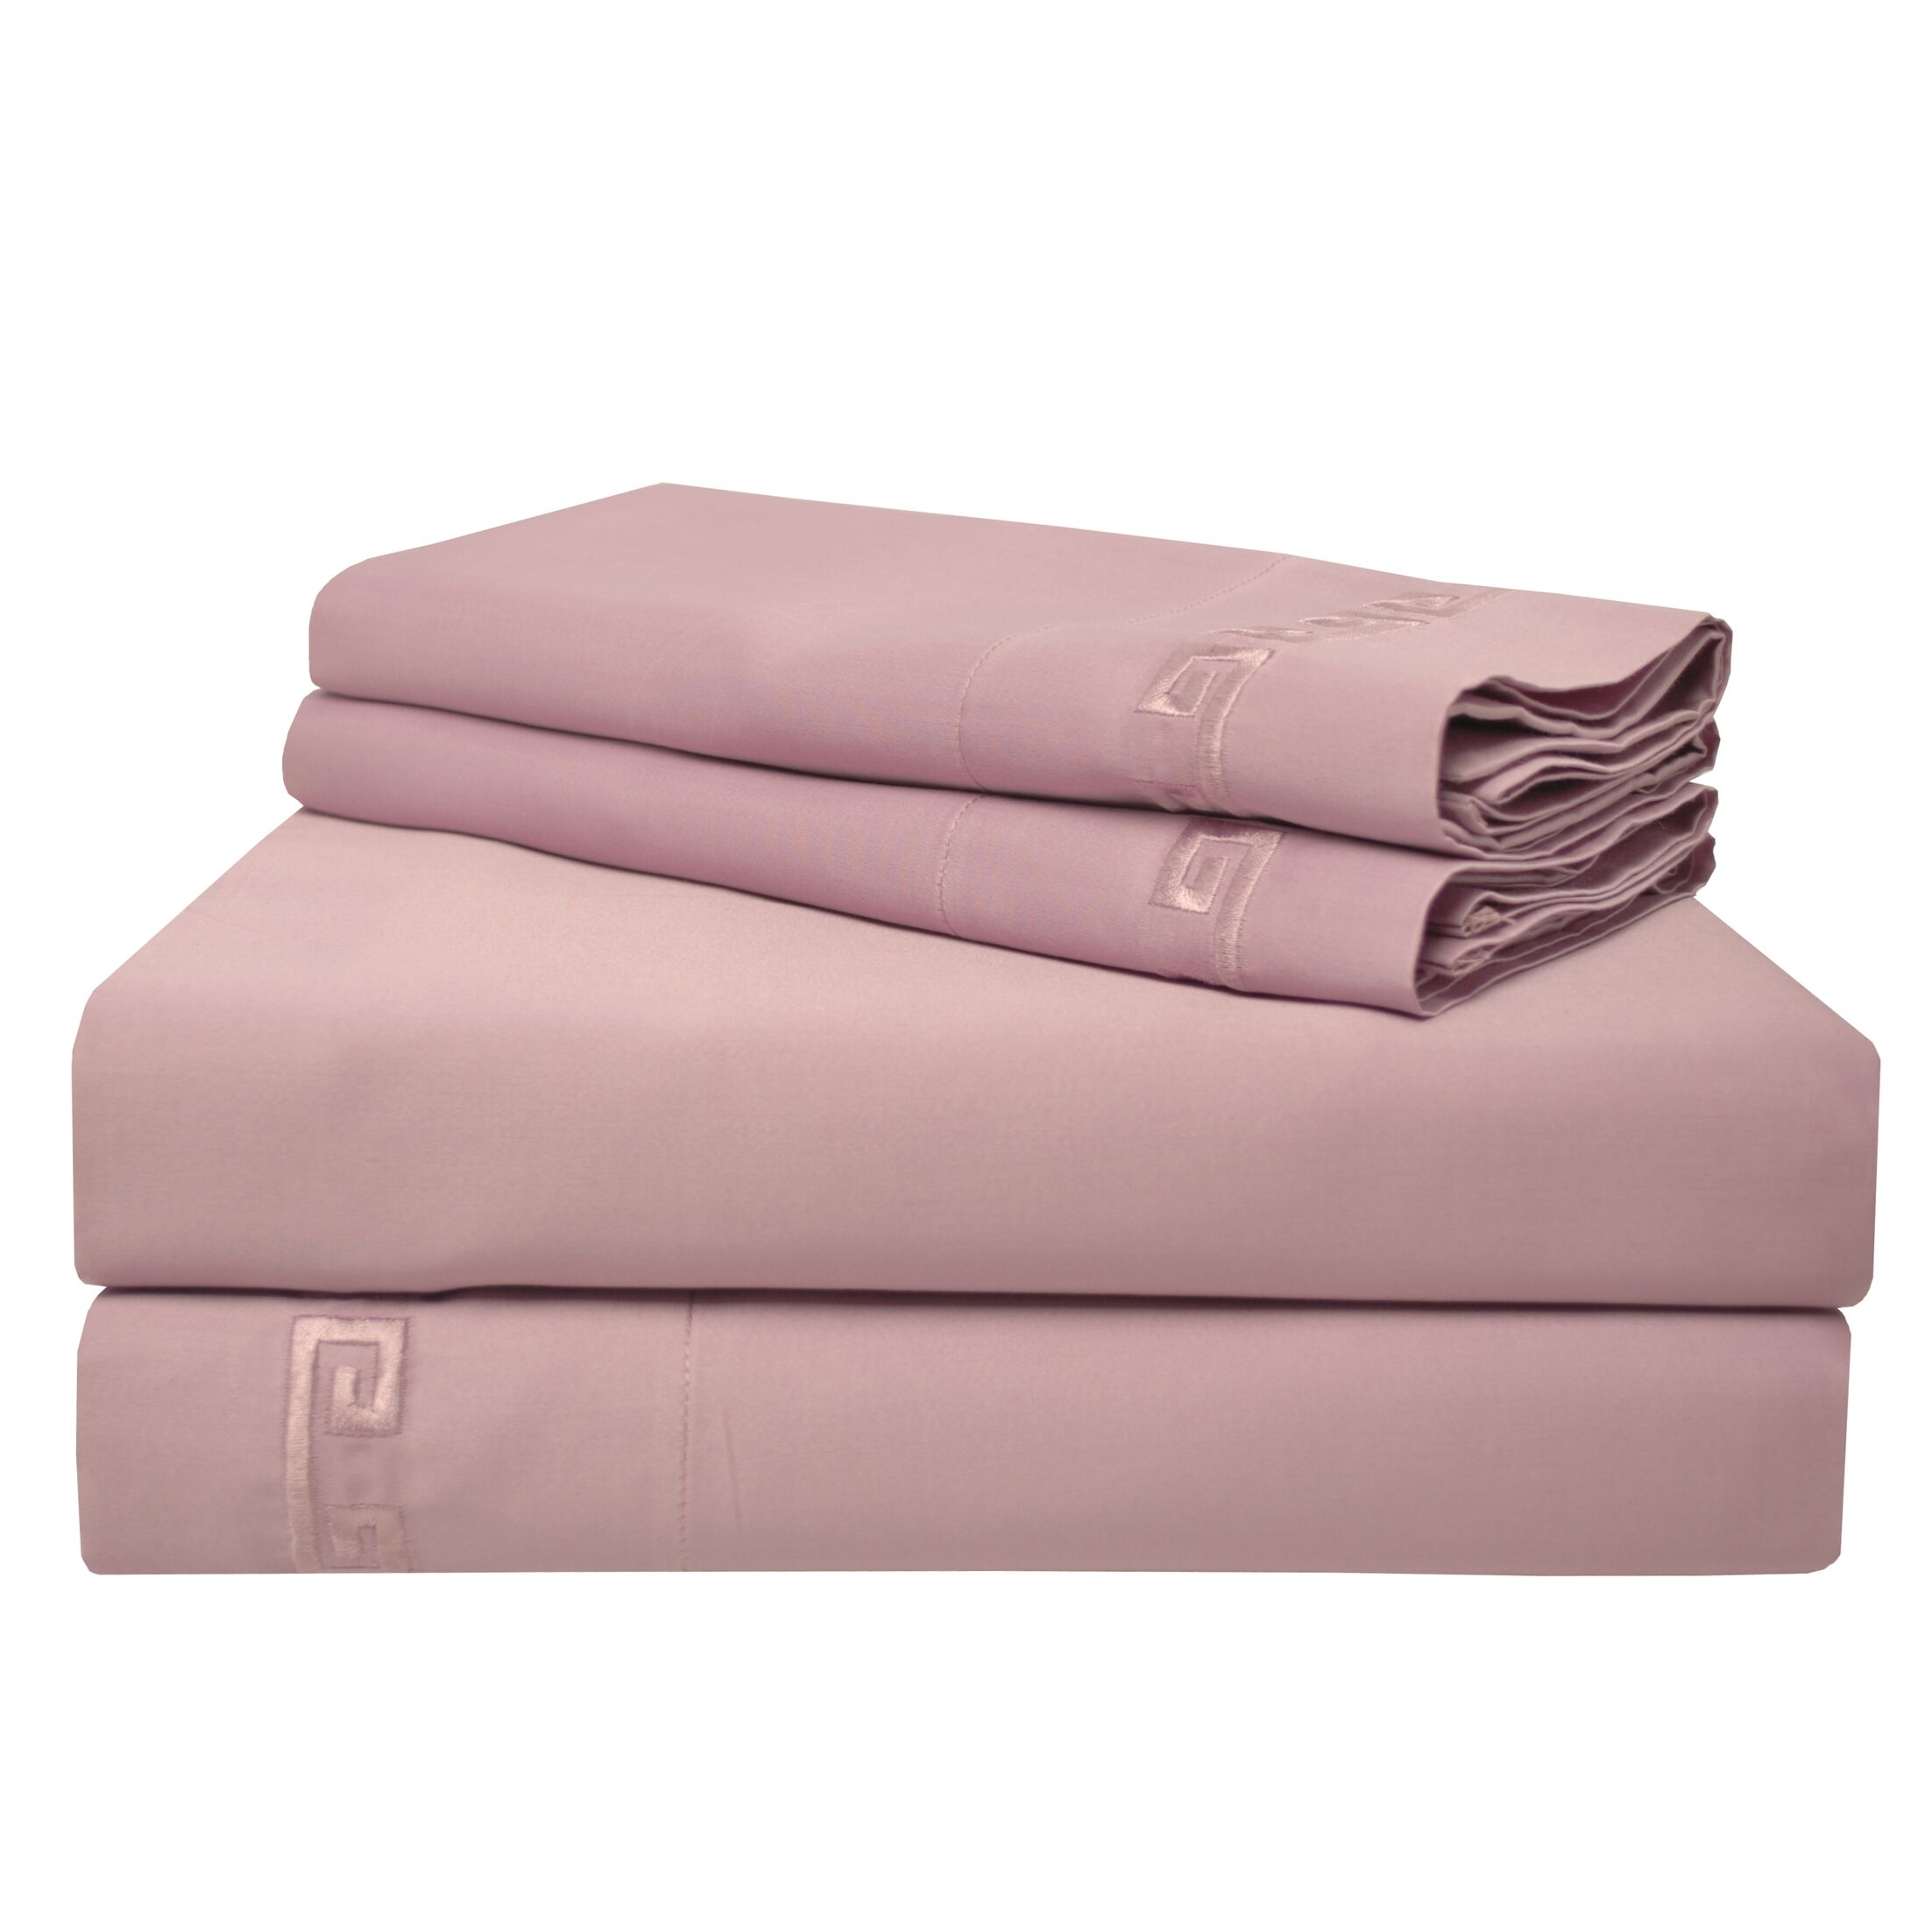 Premium 600 Thread Count Egyptian Quality Cotton Sheet Set Color: Lavender, Size: Queen